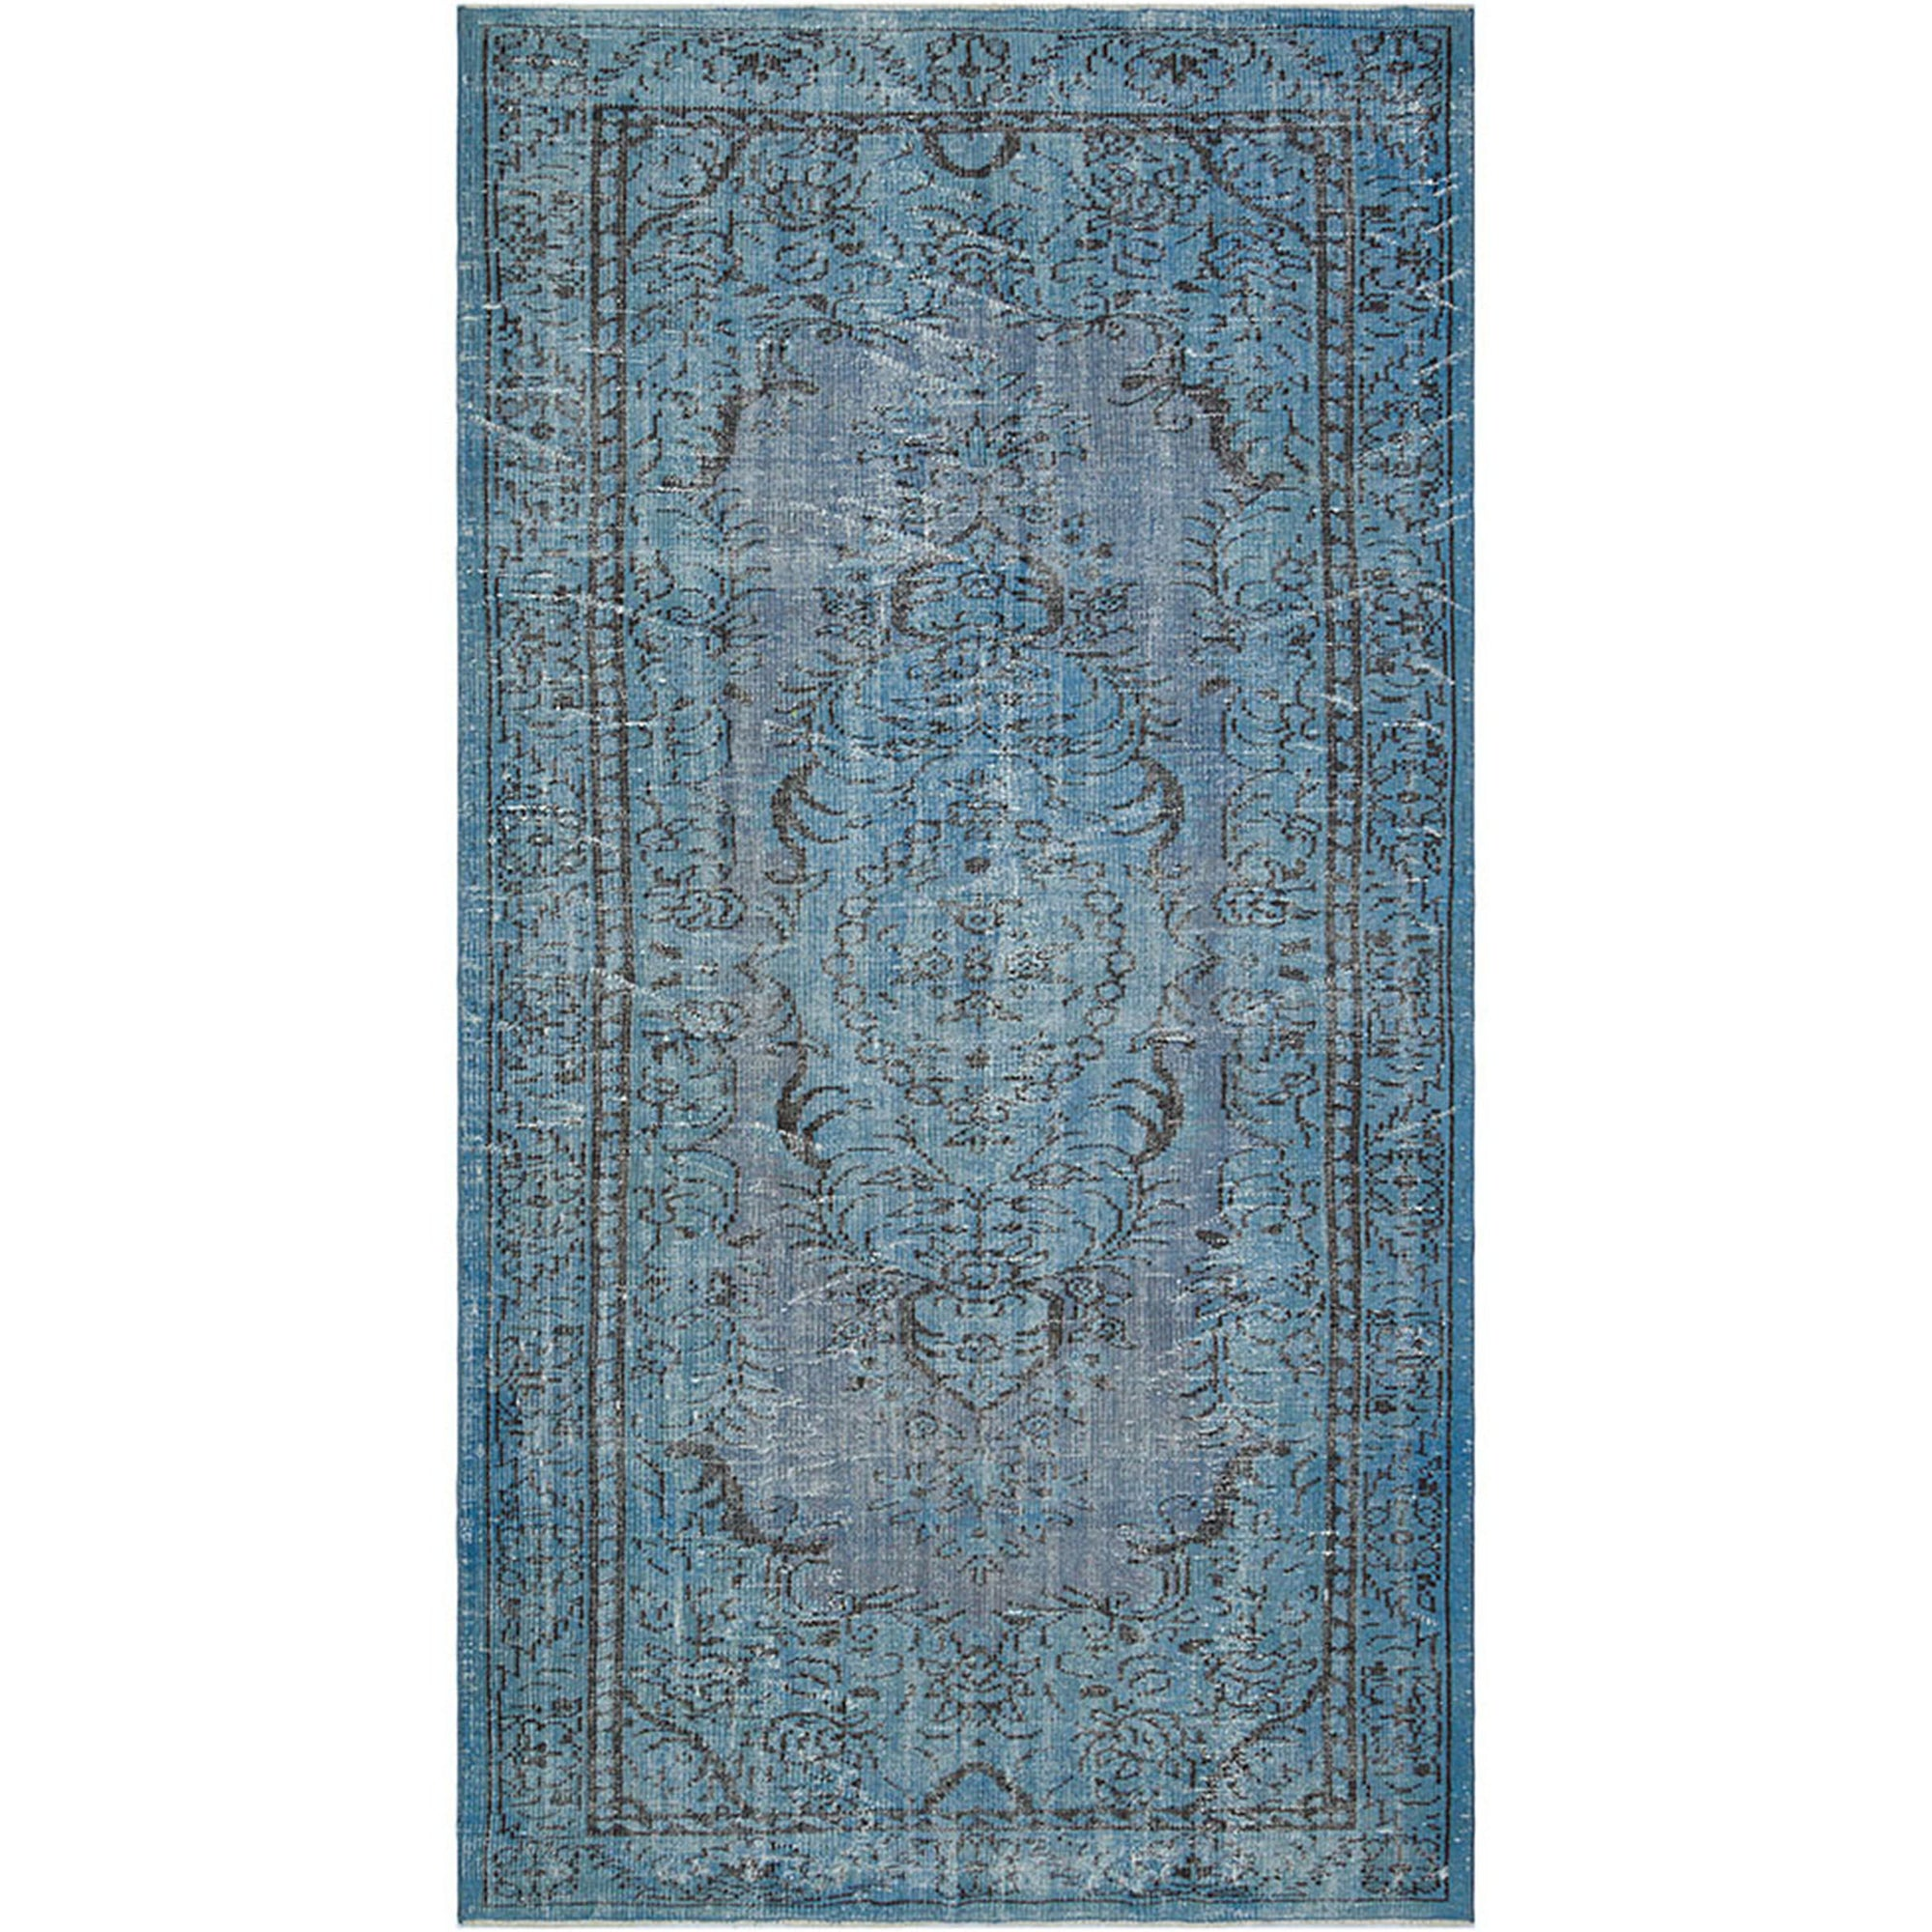 156 X 297 Anatolian Hand Knotted Carpet Vintage Style 60N2079 -  156 × 297 سجادة أناضولية معقودة يدويًا - Shop Online Furniture and Home Decor Store in Dubai, UAE at ebarza